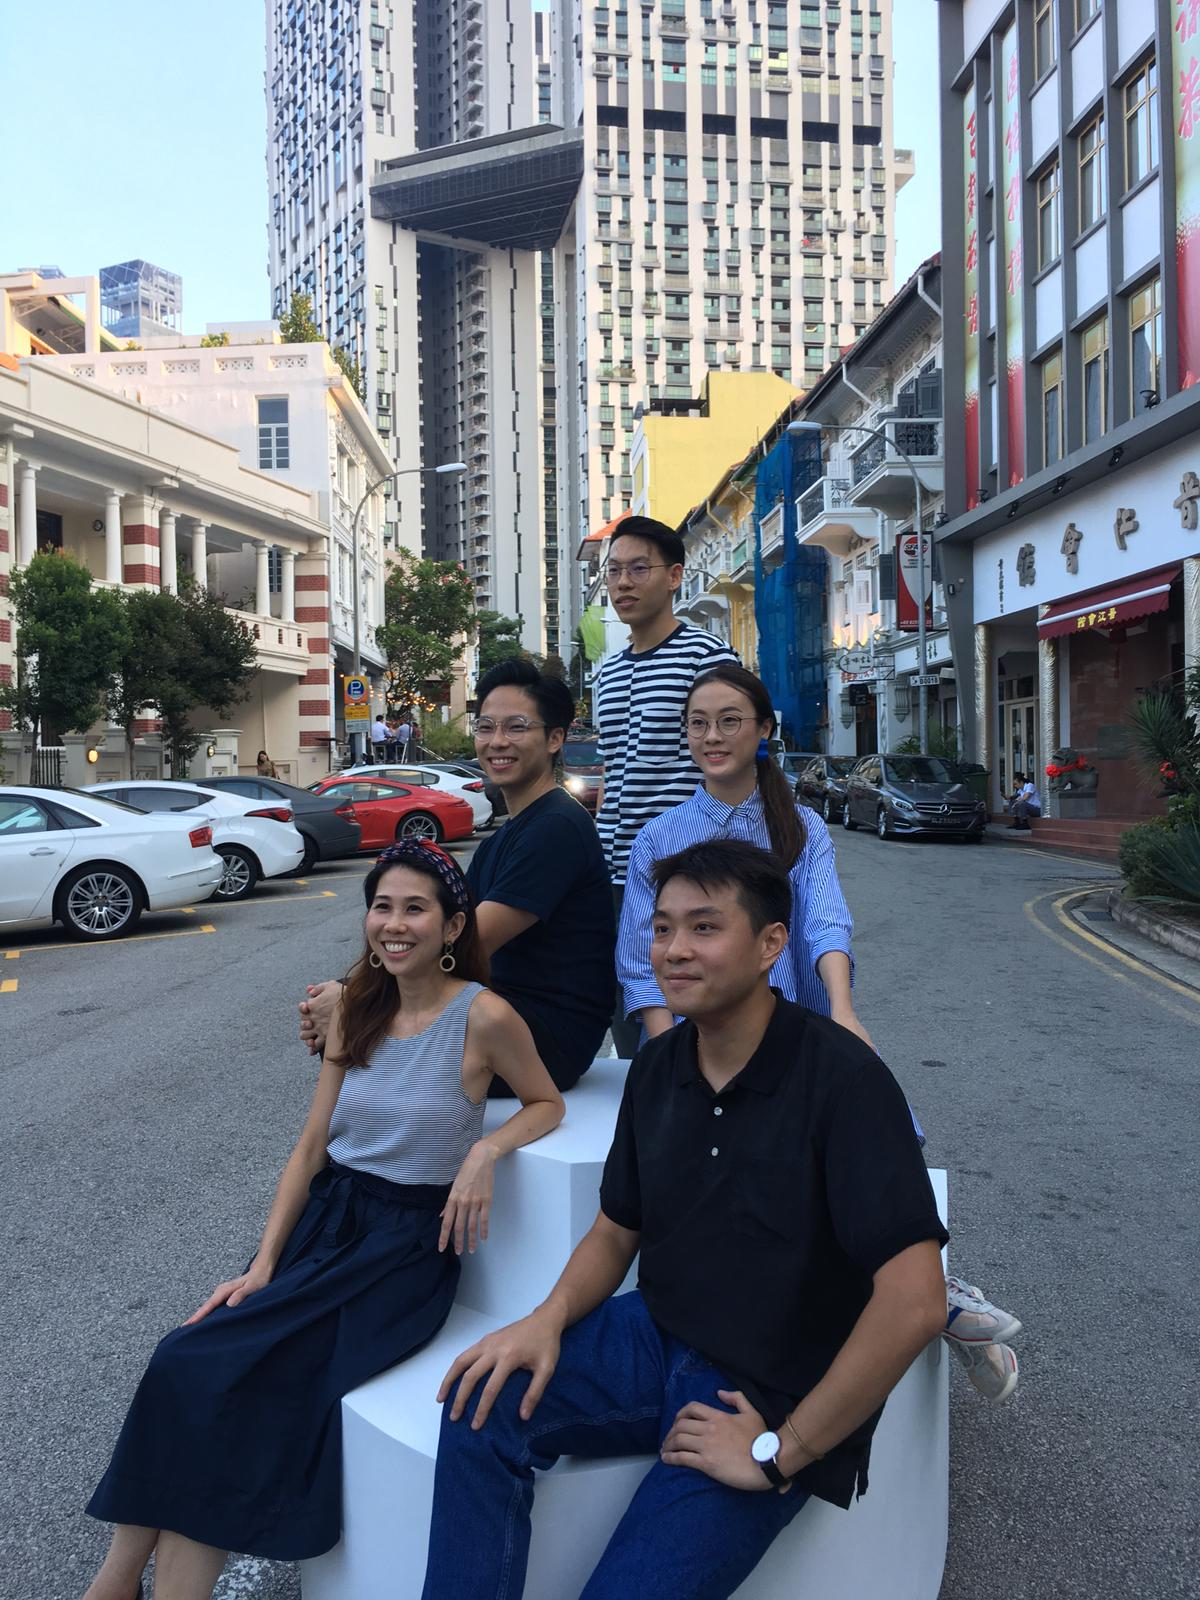 Ryan and Shermeen (of OuterEdit) with fellow creative collaborators Melvin Ong, Ong Lijie and Matthew Sia